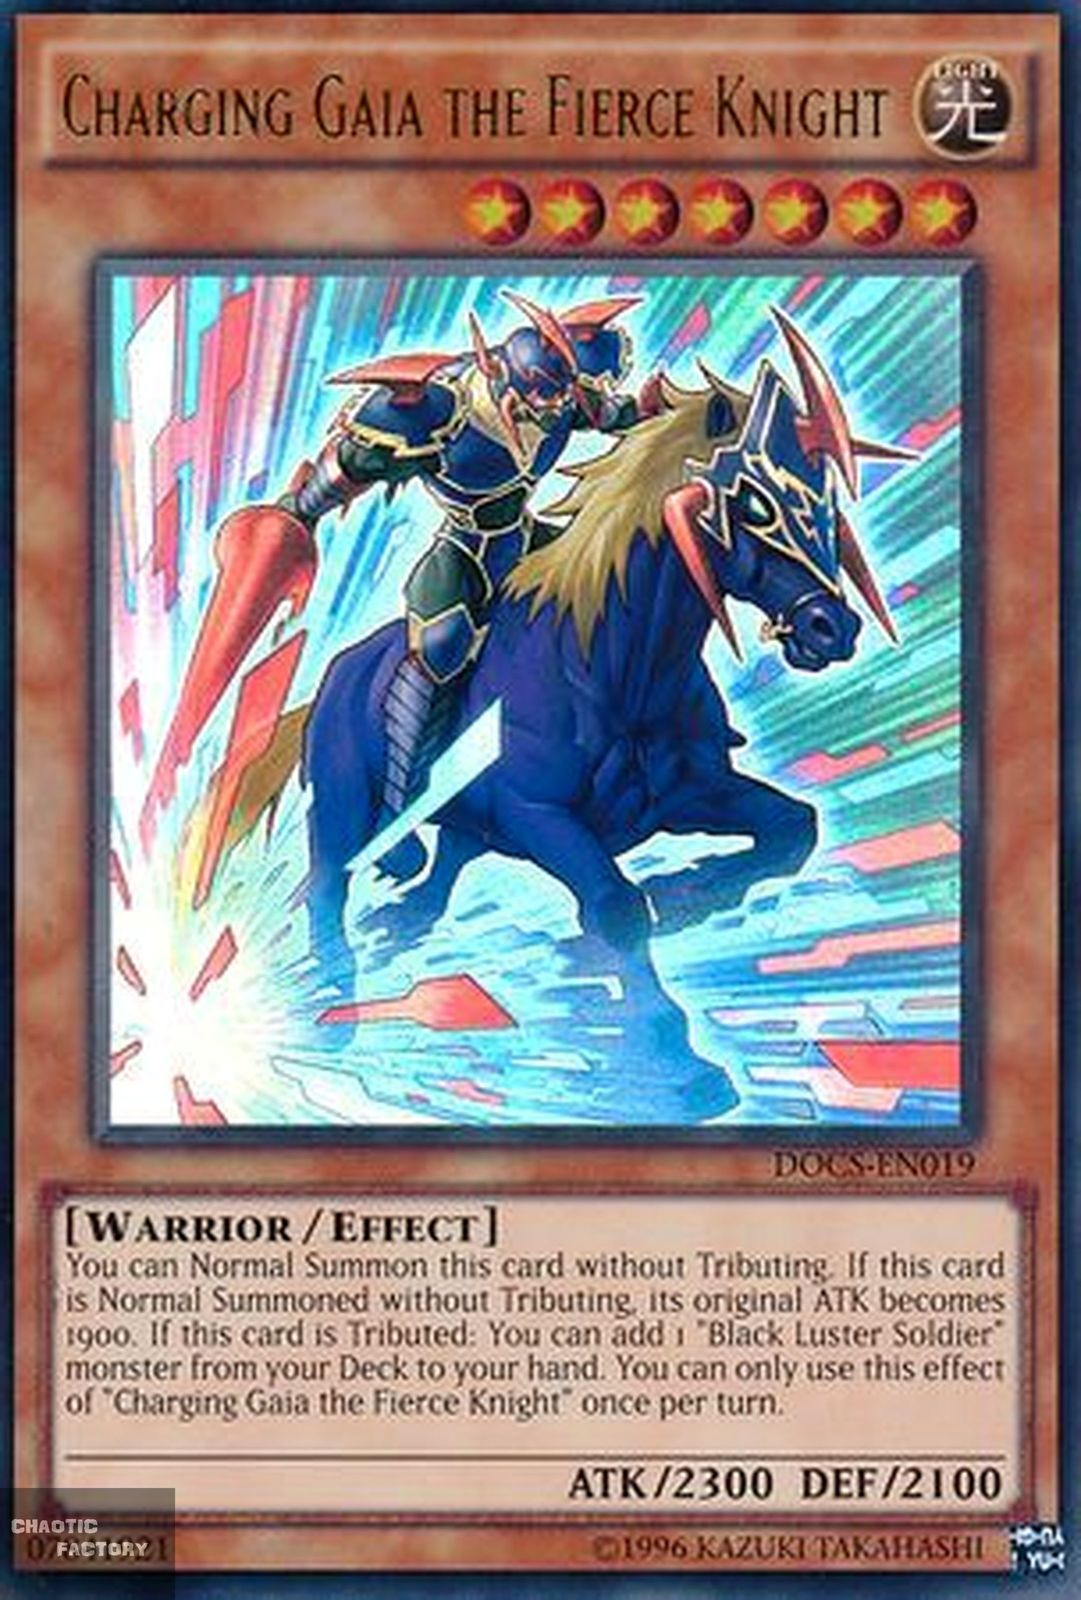 Yugioh Charging Gaia The Fierce Knight Docs En019 Ultra Rare Unlimited